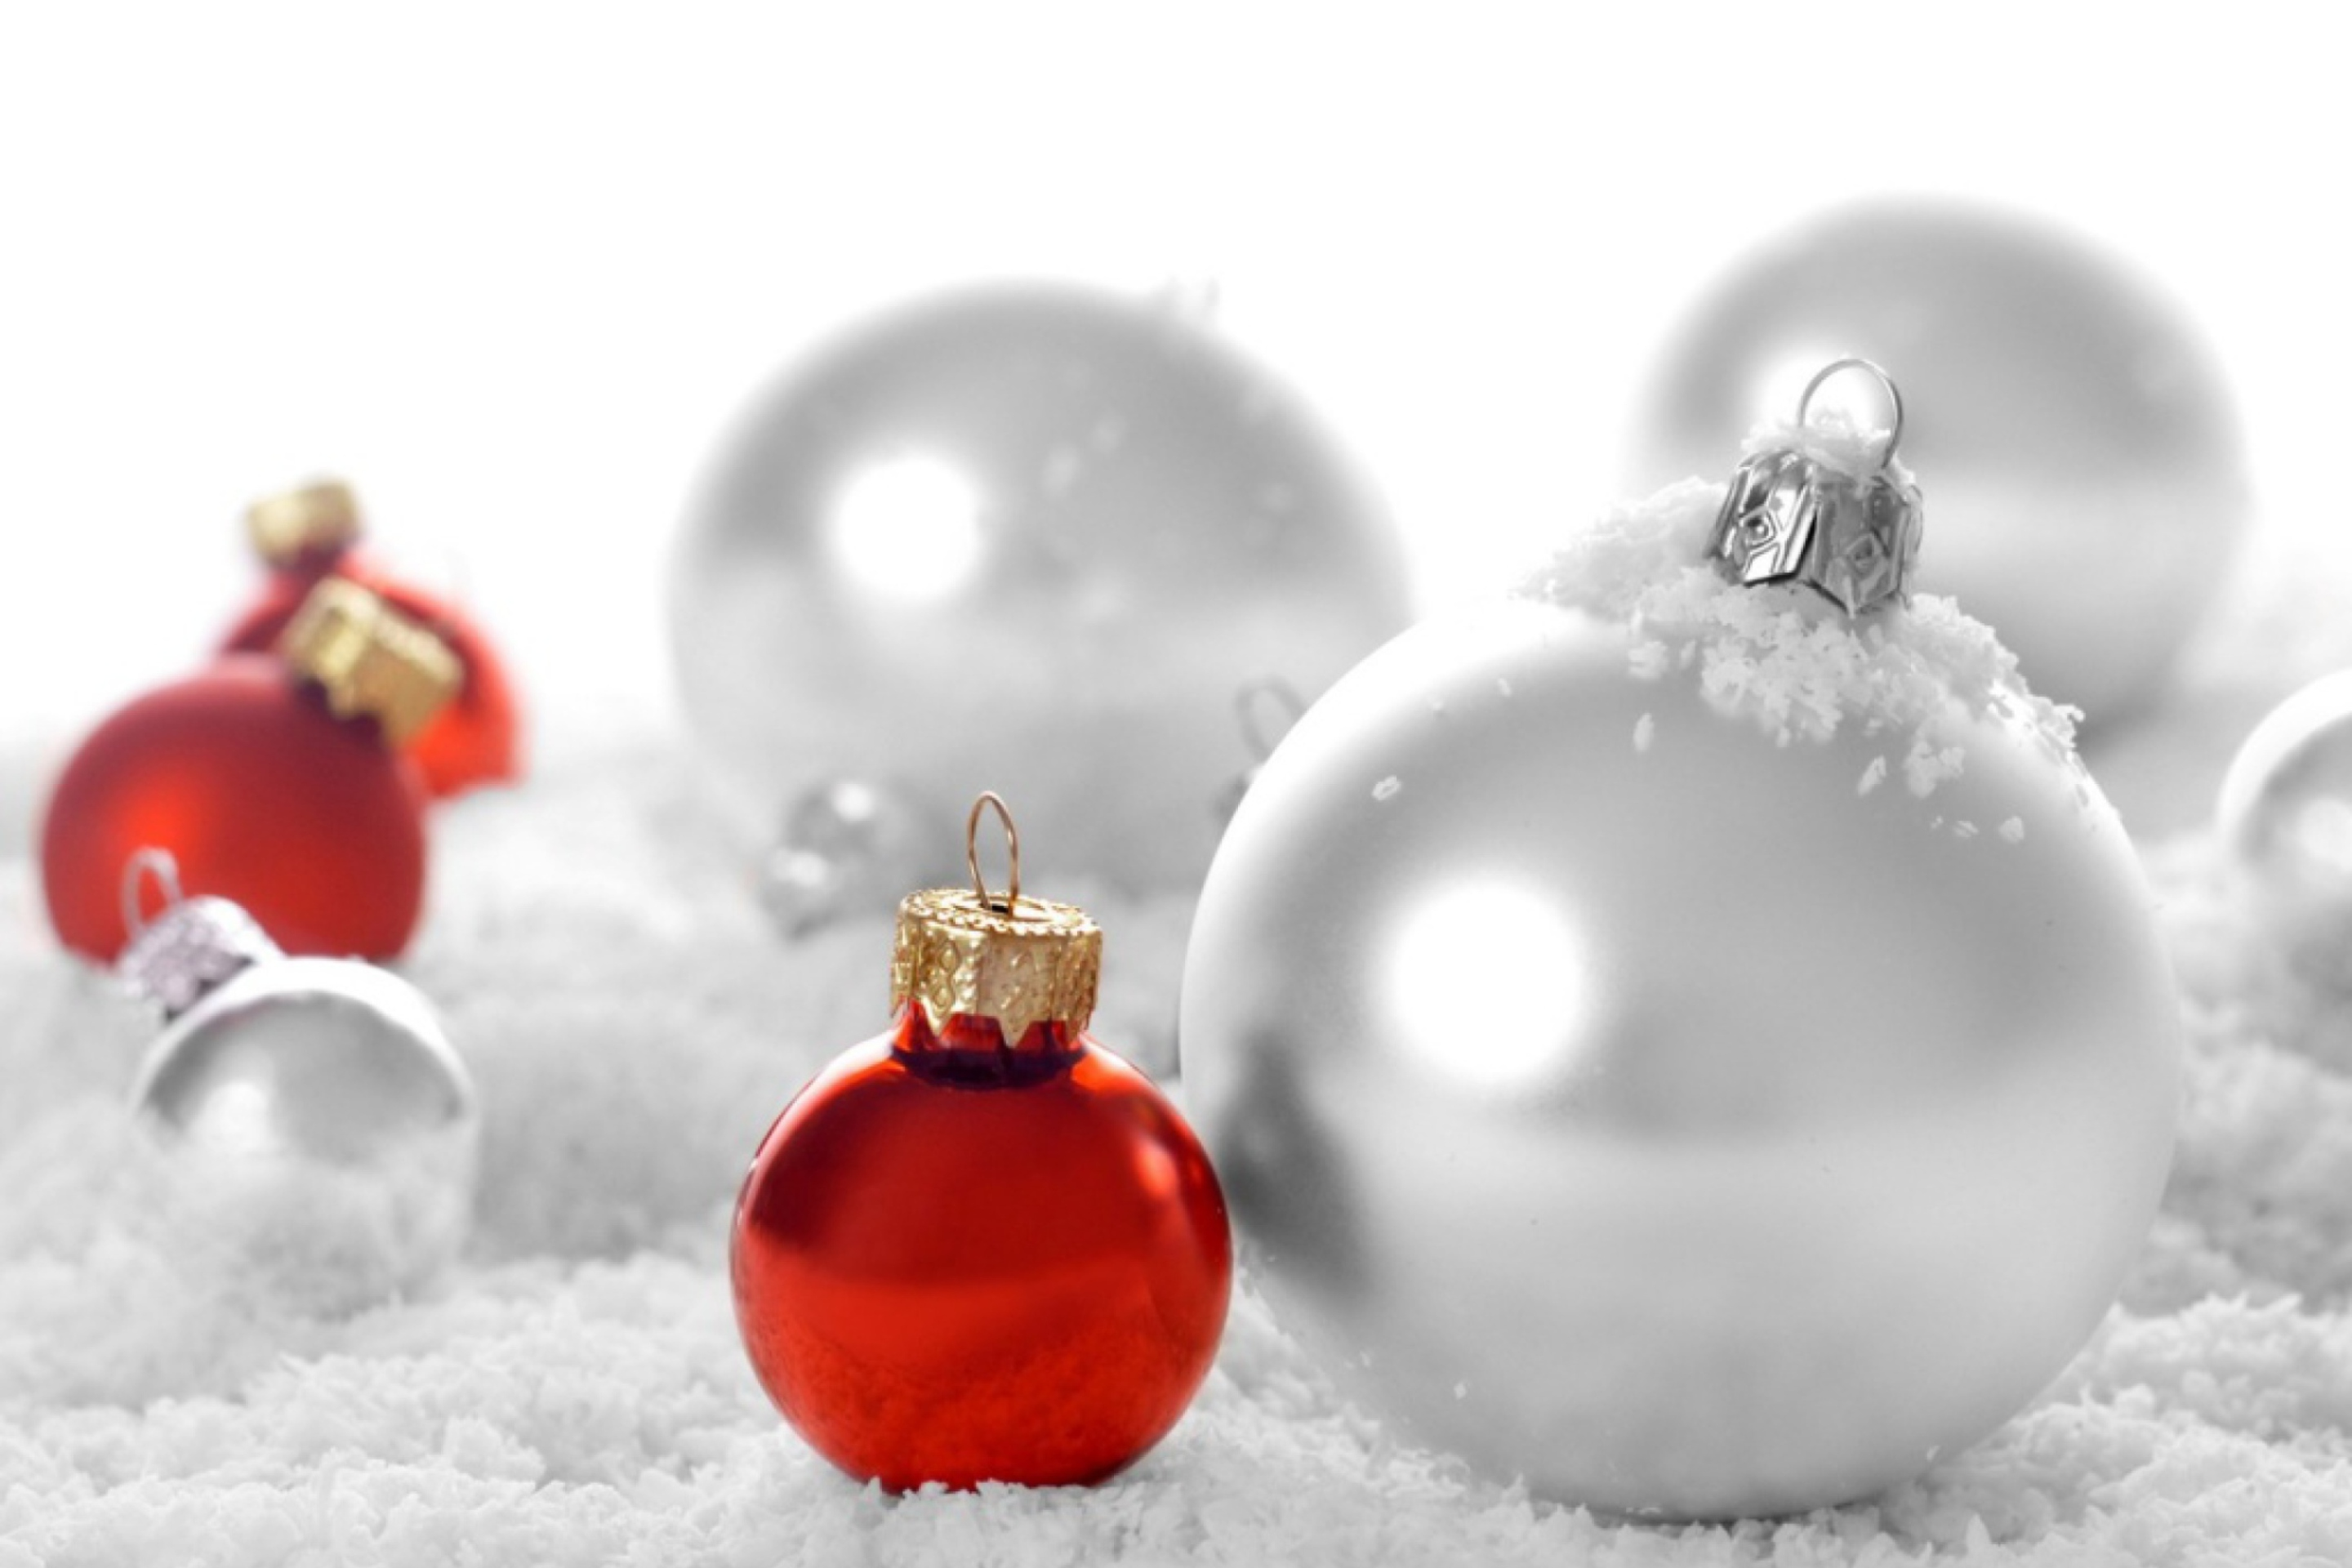 Christmas Decorations wallpaper 2880x1920